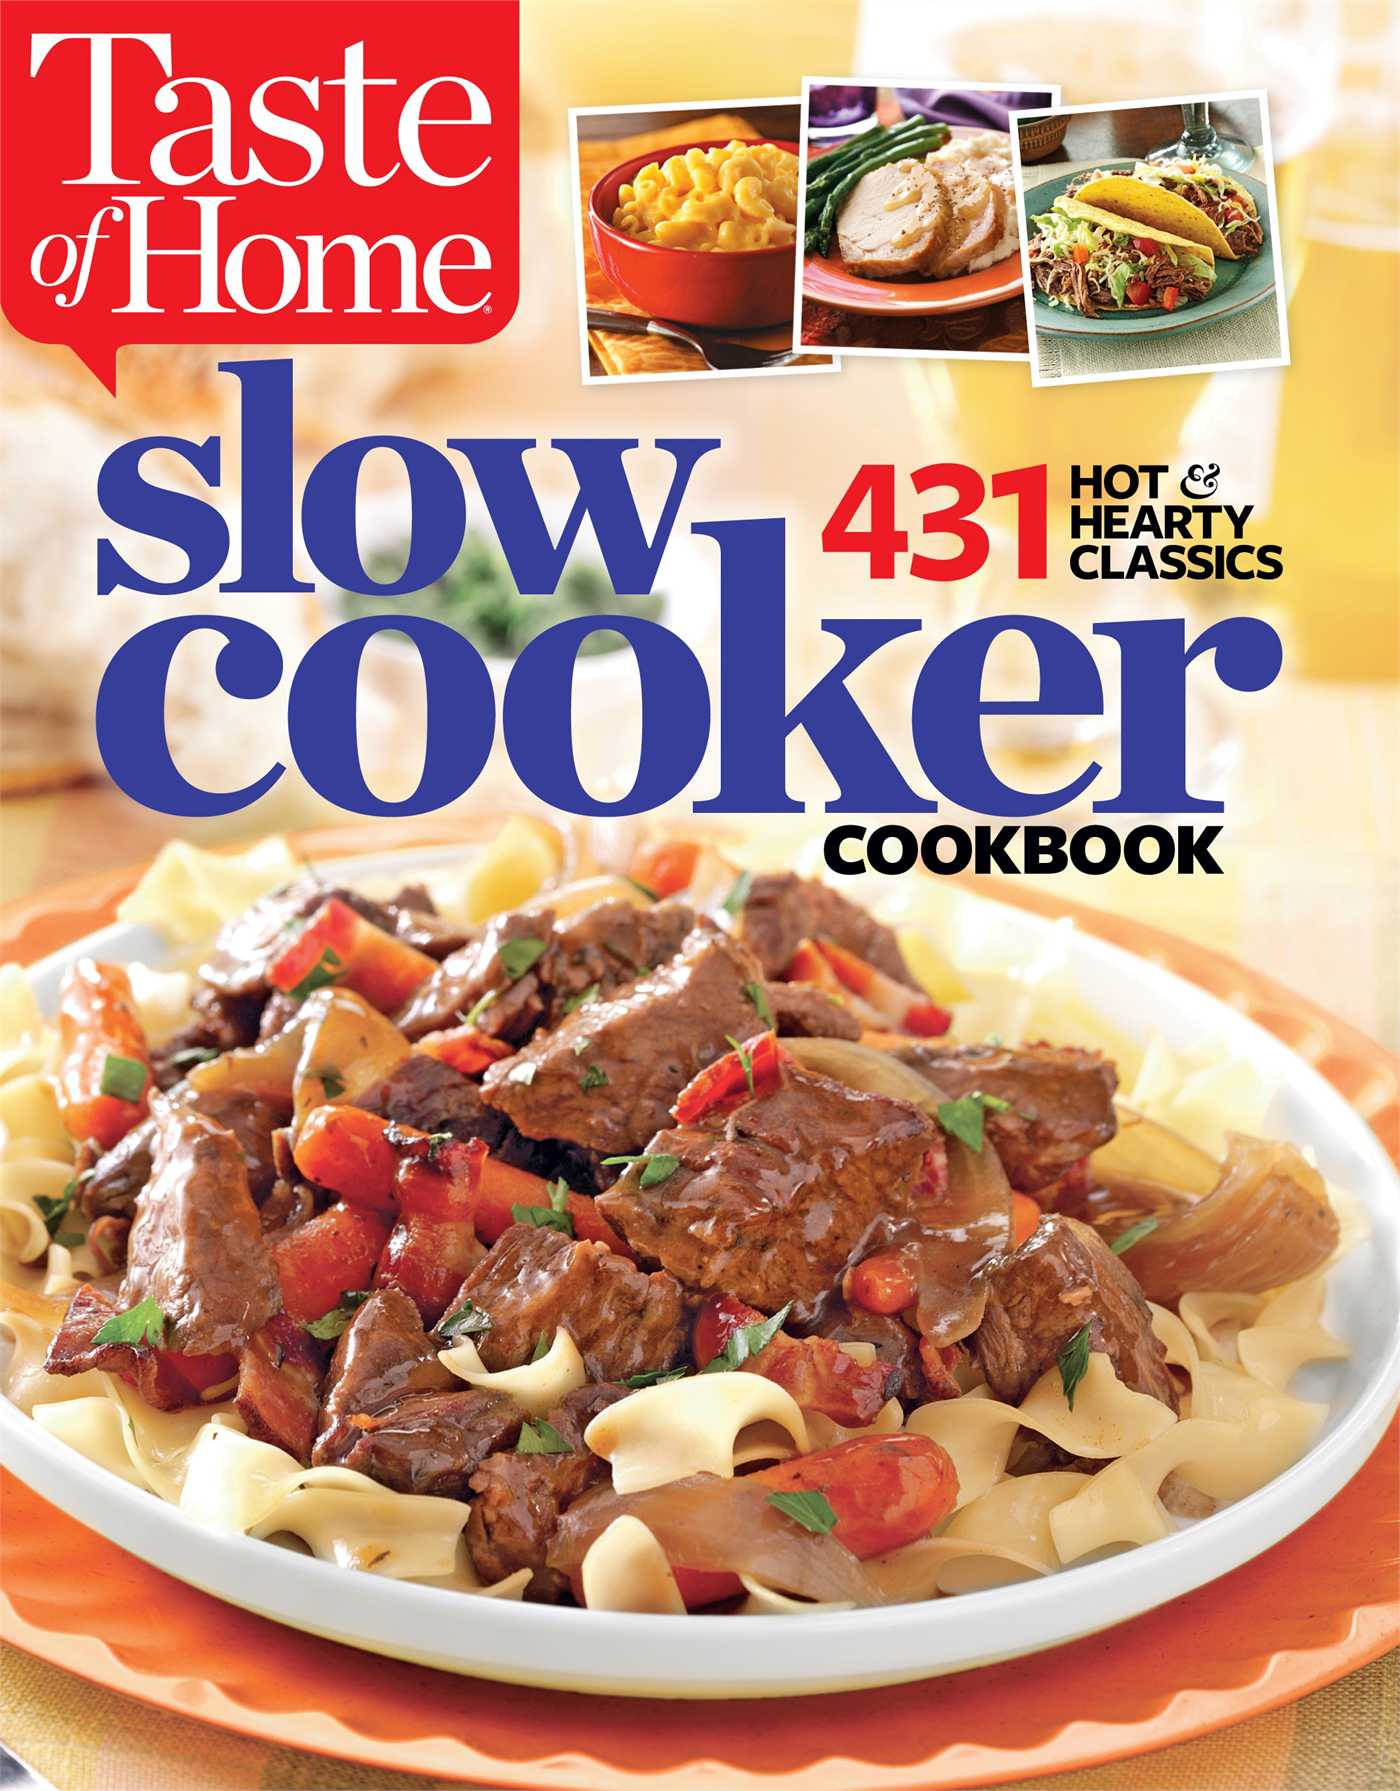 Taste of Home Slow Cooker : 429 Hot & Hearty Classics